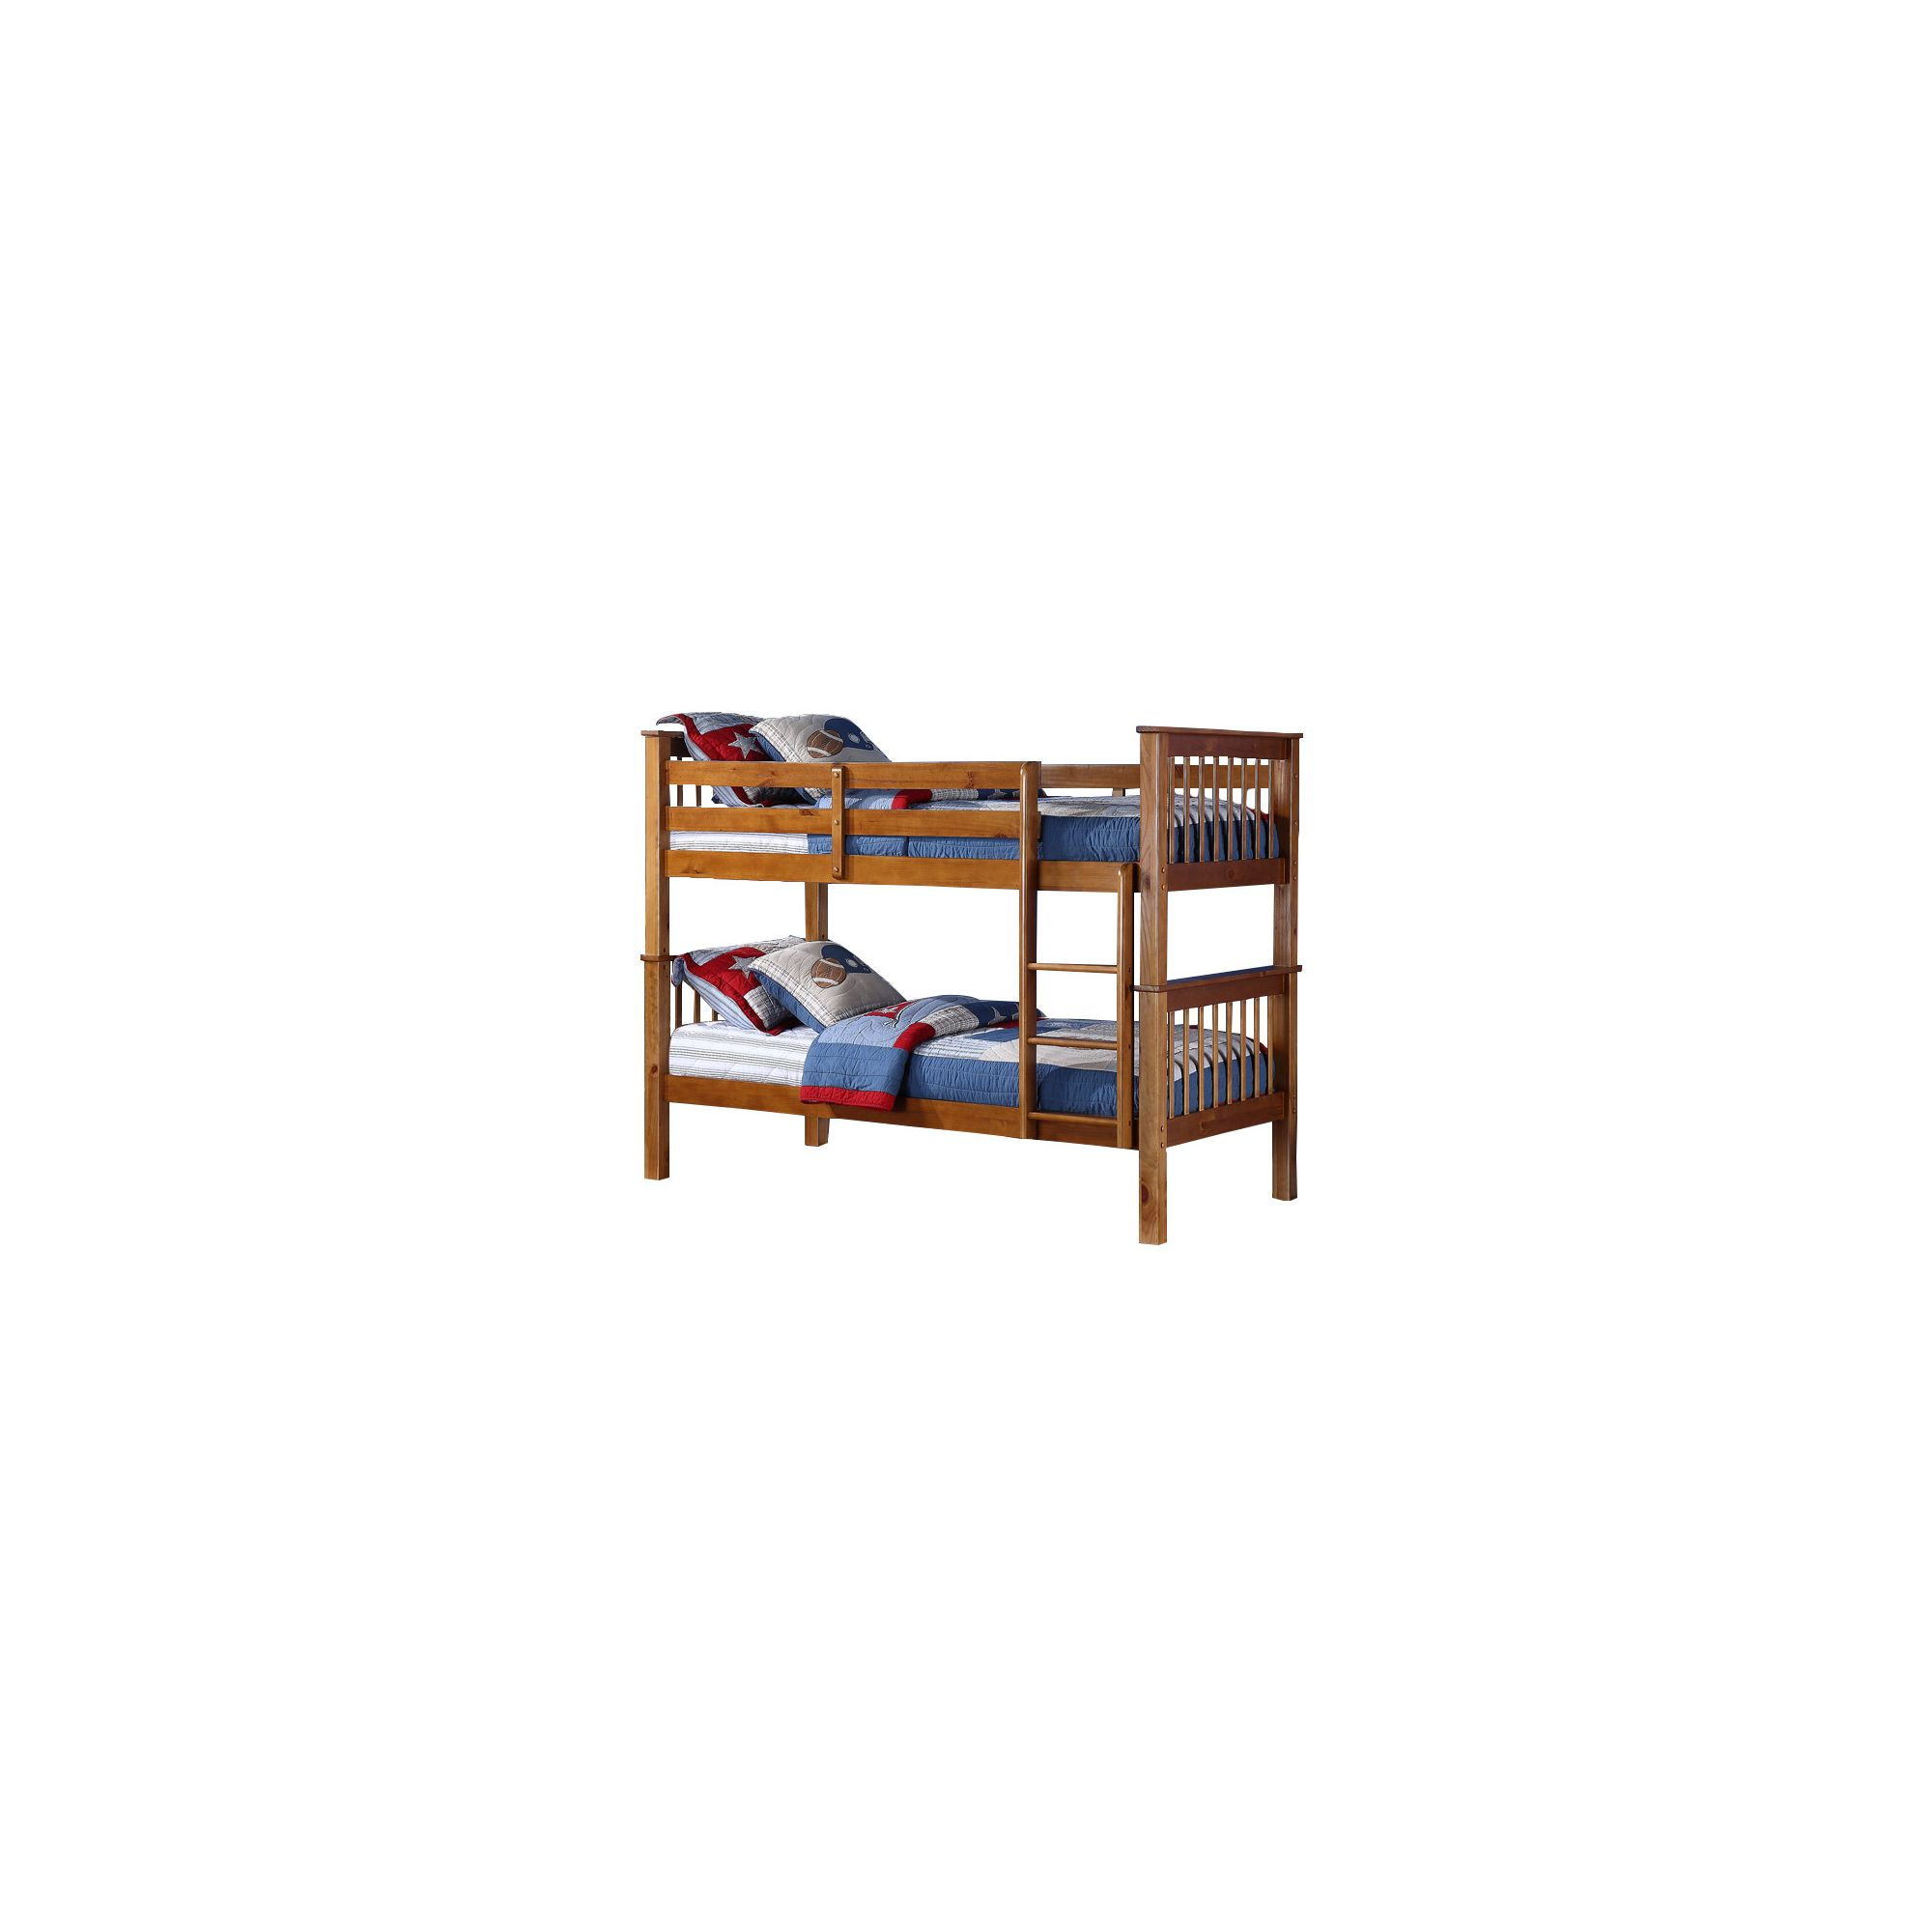 Altruna Devon Bunk Bed Frame - Pine at Tesco Direct